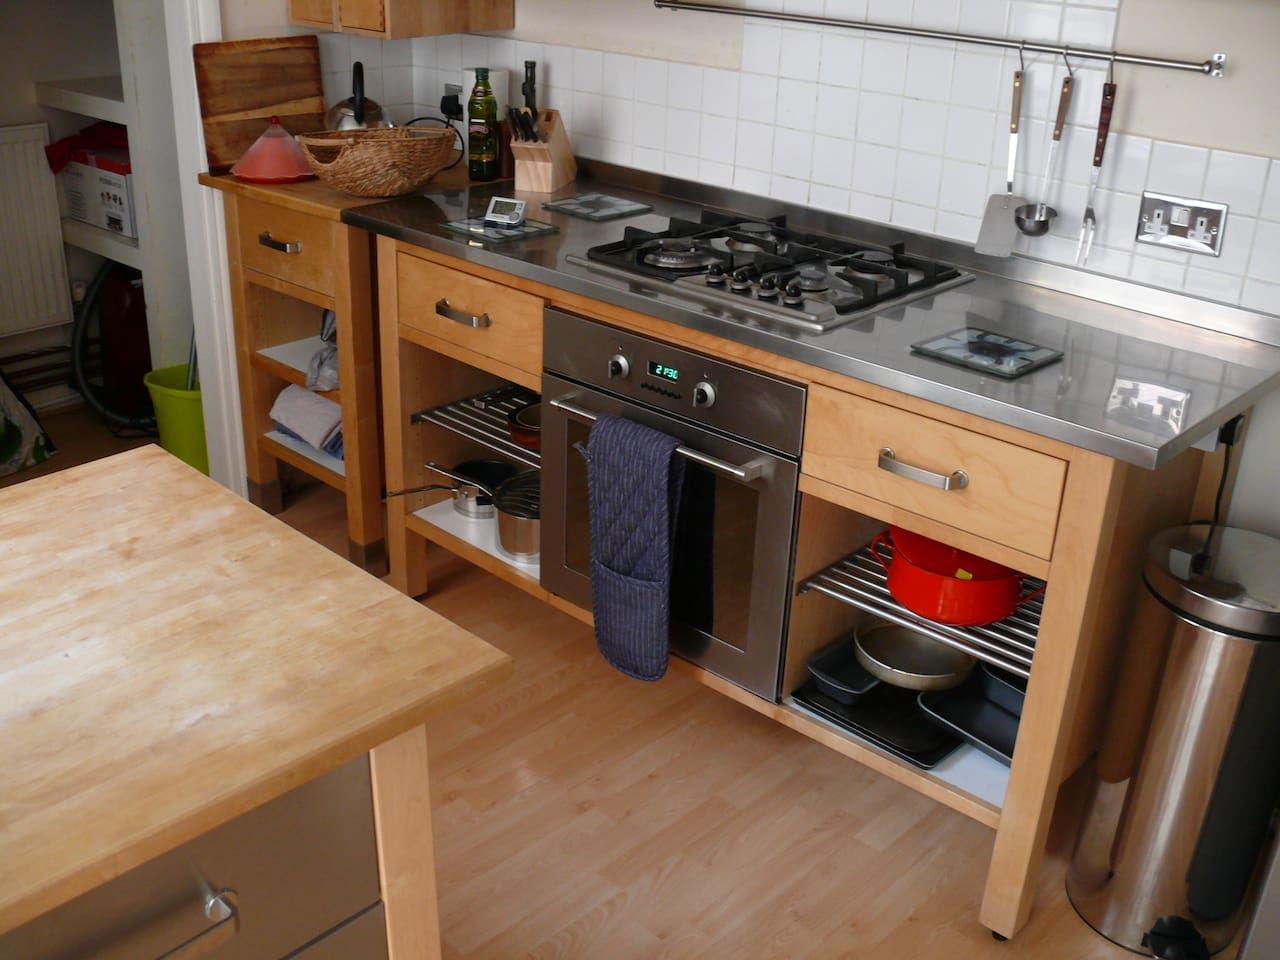 well appointed & well stocked kitchen, gas hobs, electric over, microwave, plus fridge/ freezer